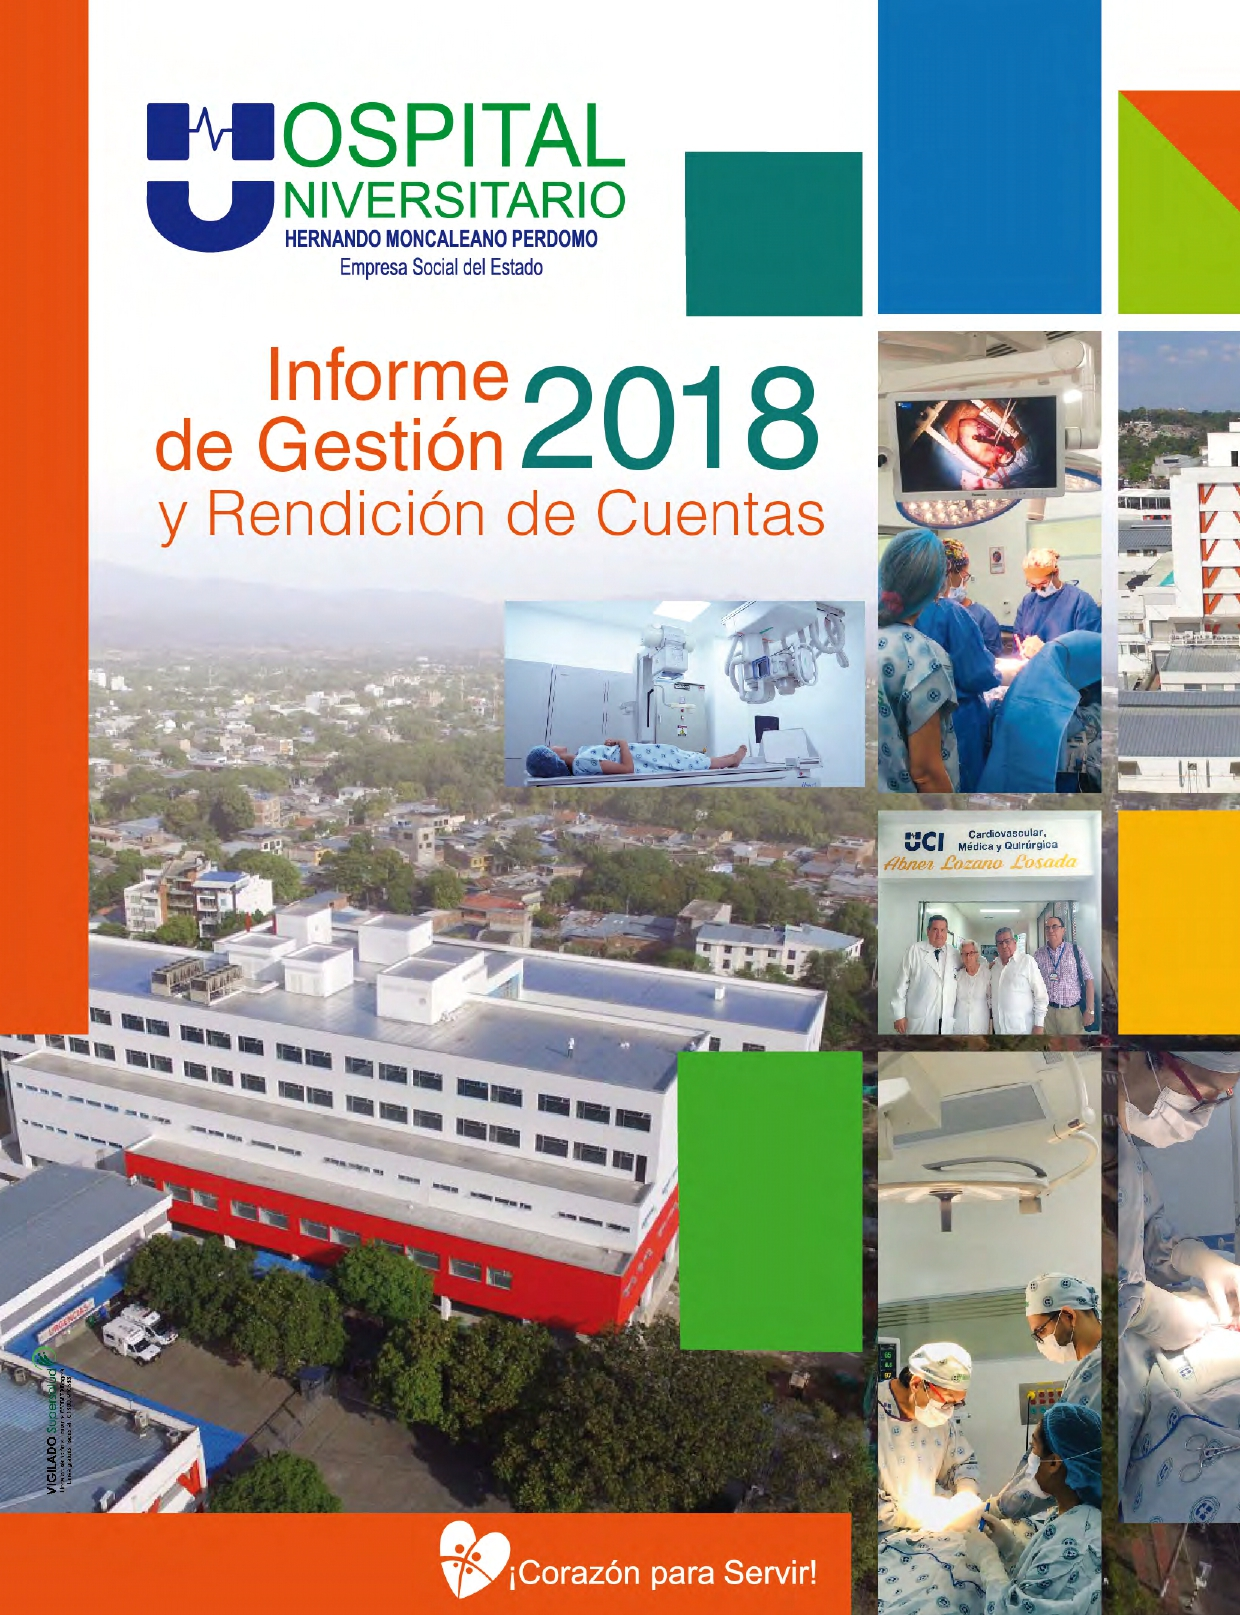 INFORME DE GESTIÓN HUHMP 2018_pages-to-jpg-0001